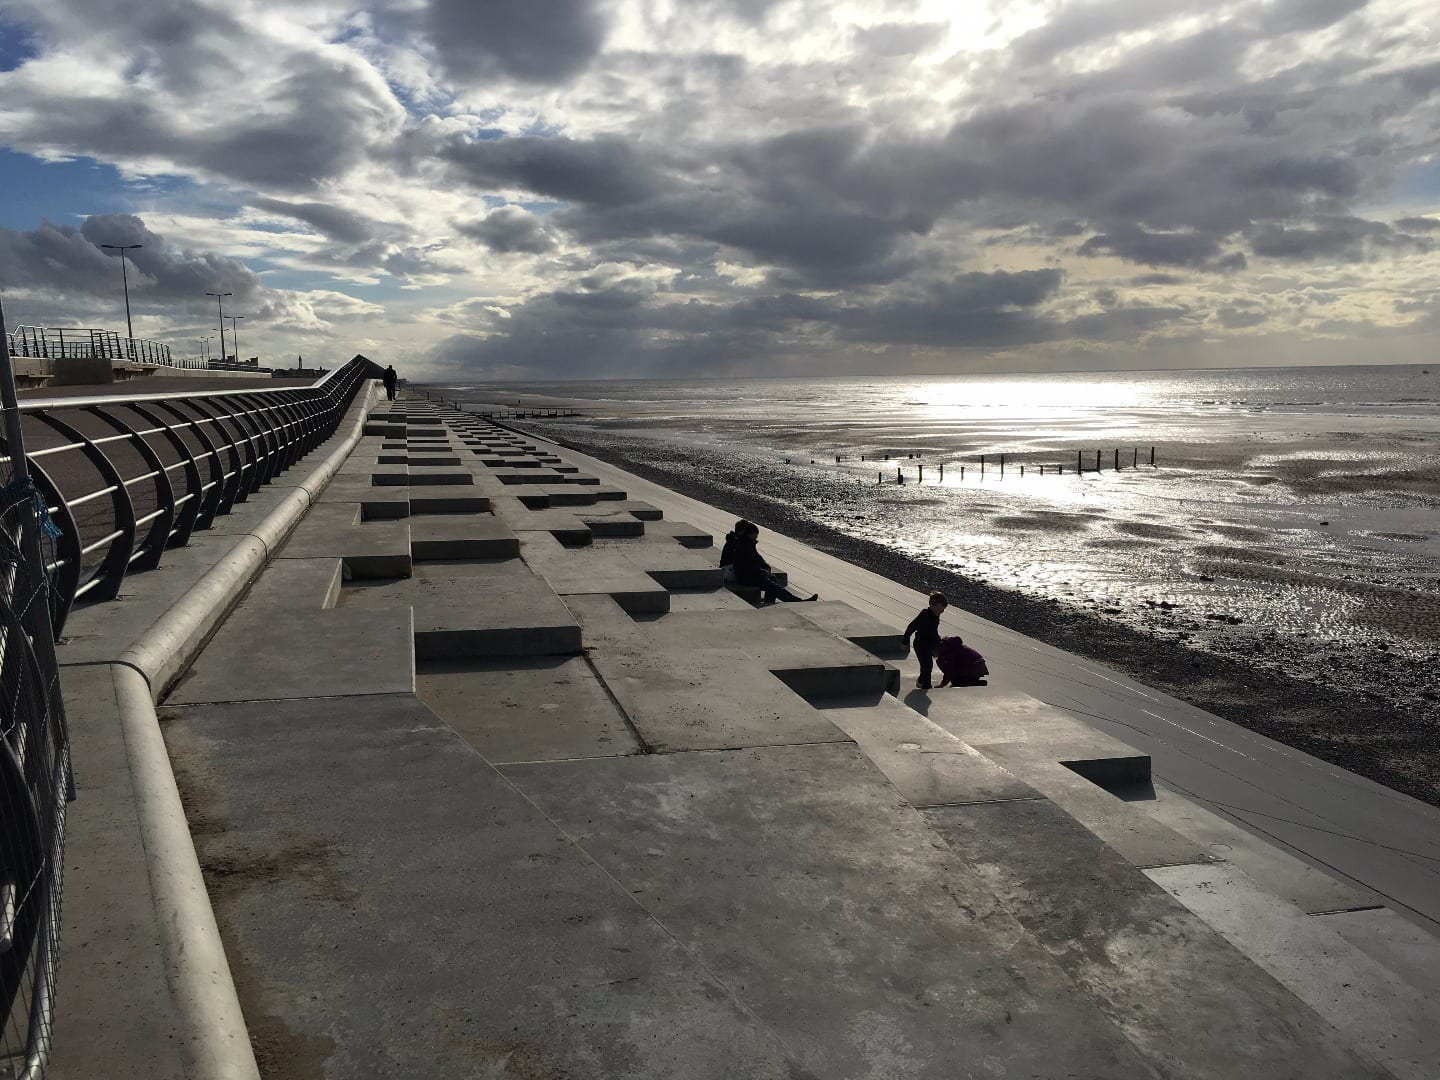 Anchorsholme sea defences on Blackpool seafront near Cleveleys